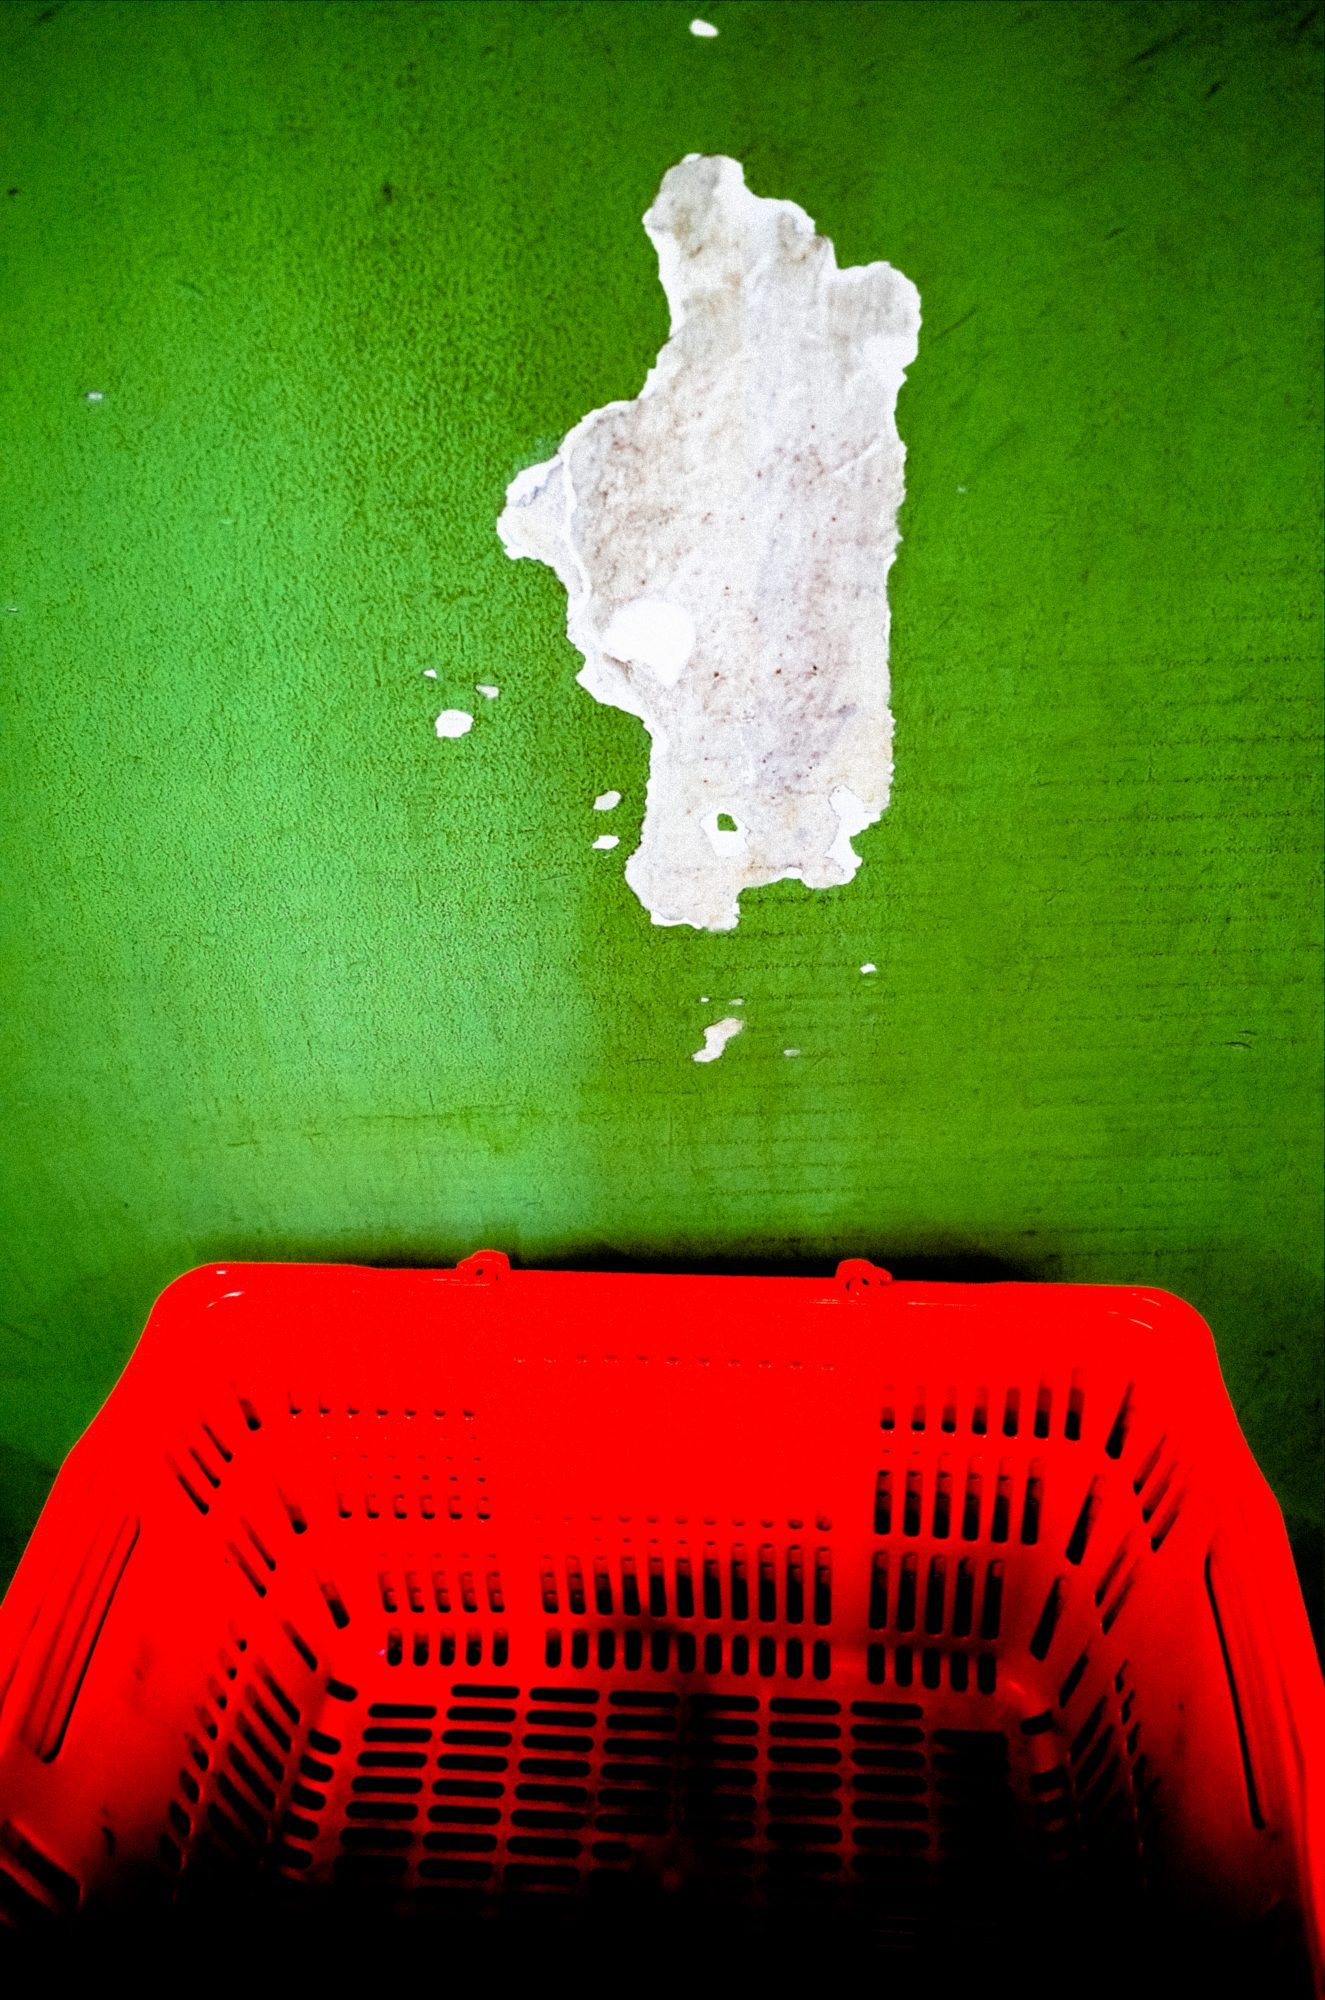 Red wall and green basket inside grocery store. Kyoto, 2017